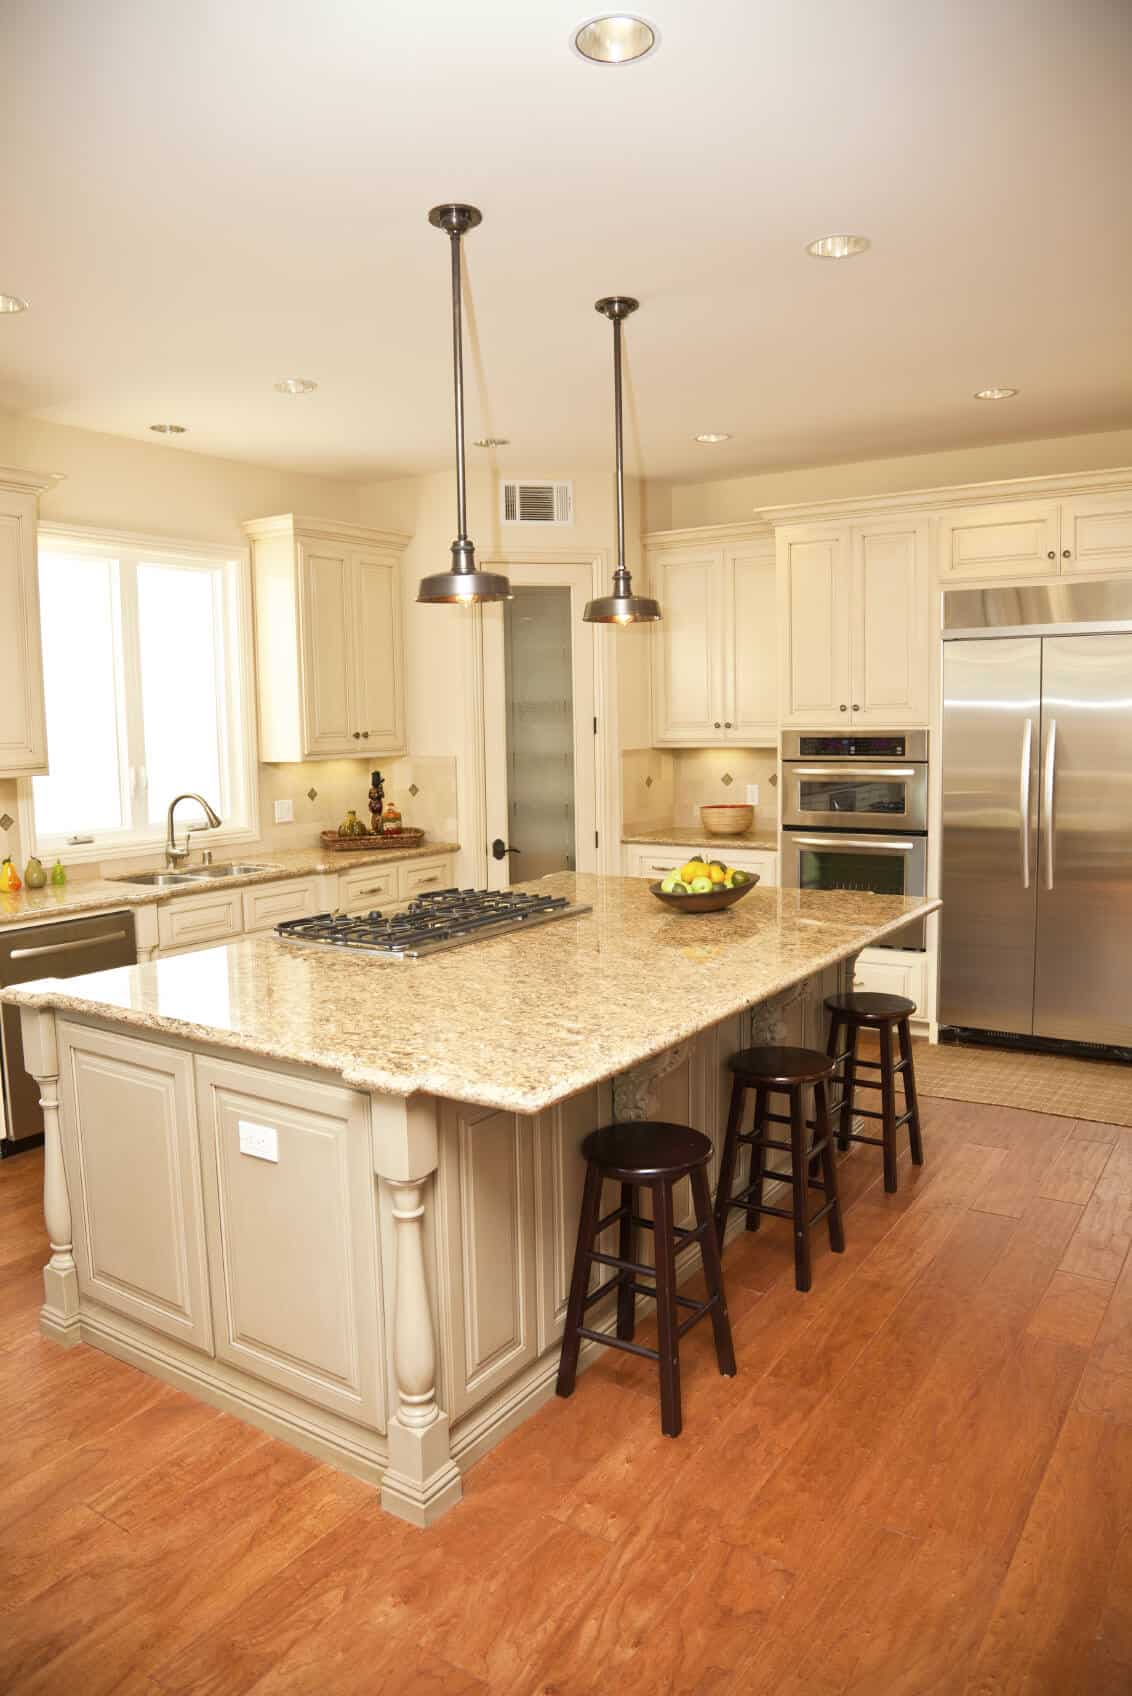 Kitchen island photo of a luxurious beige tone island features wide overhang for dining, with built in range.